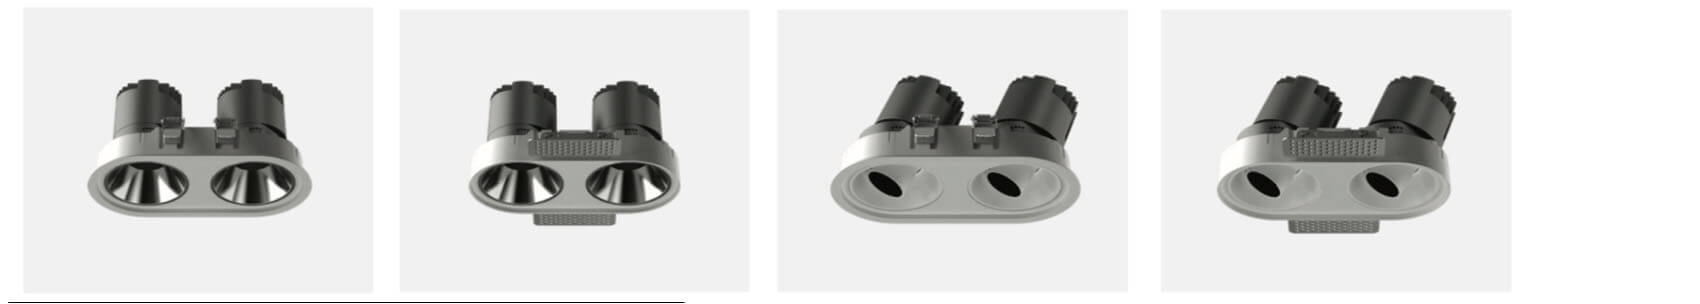 2X20 round LED SPOT DOWNLIGHT - Led Spotlight Recessed with 6 colors reflector